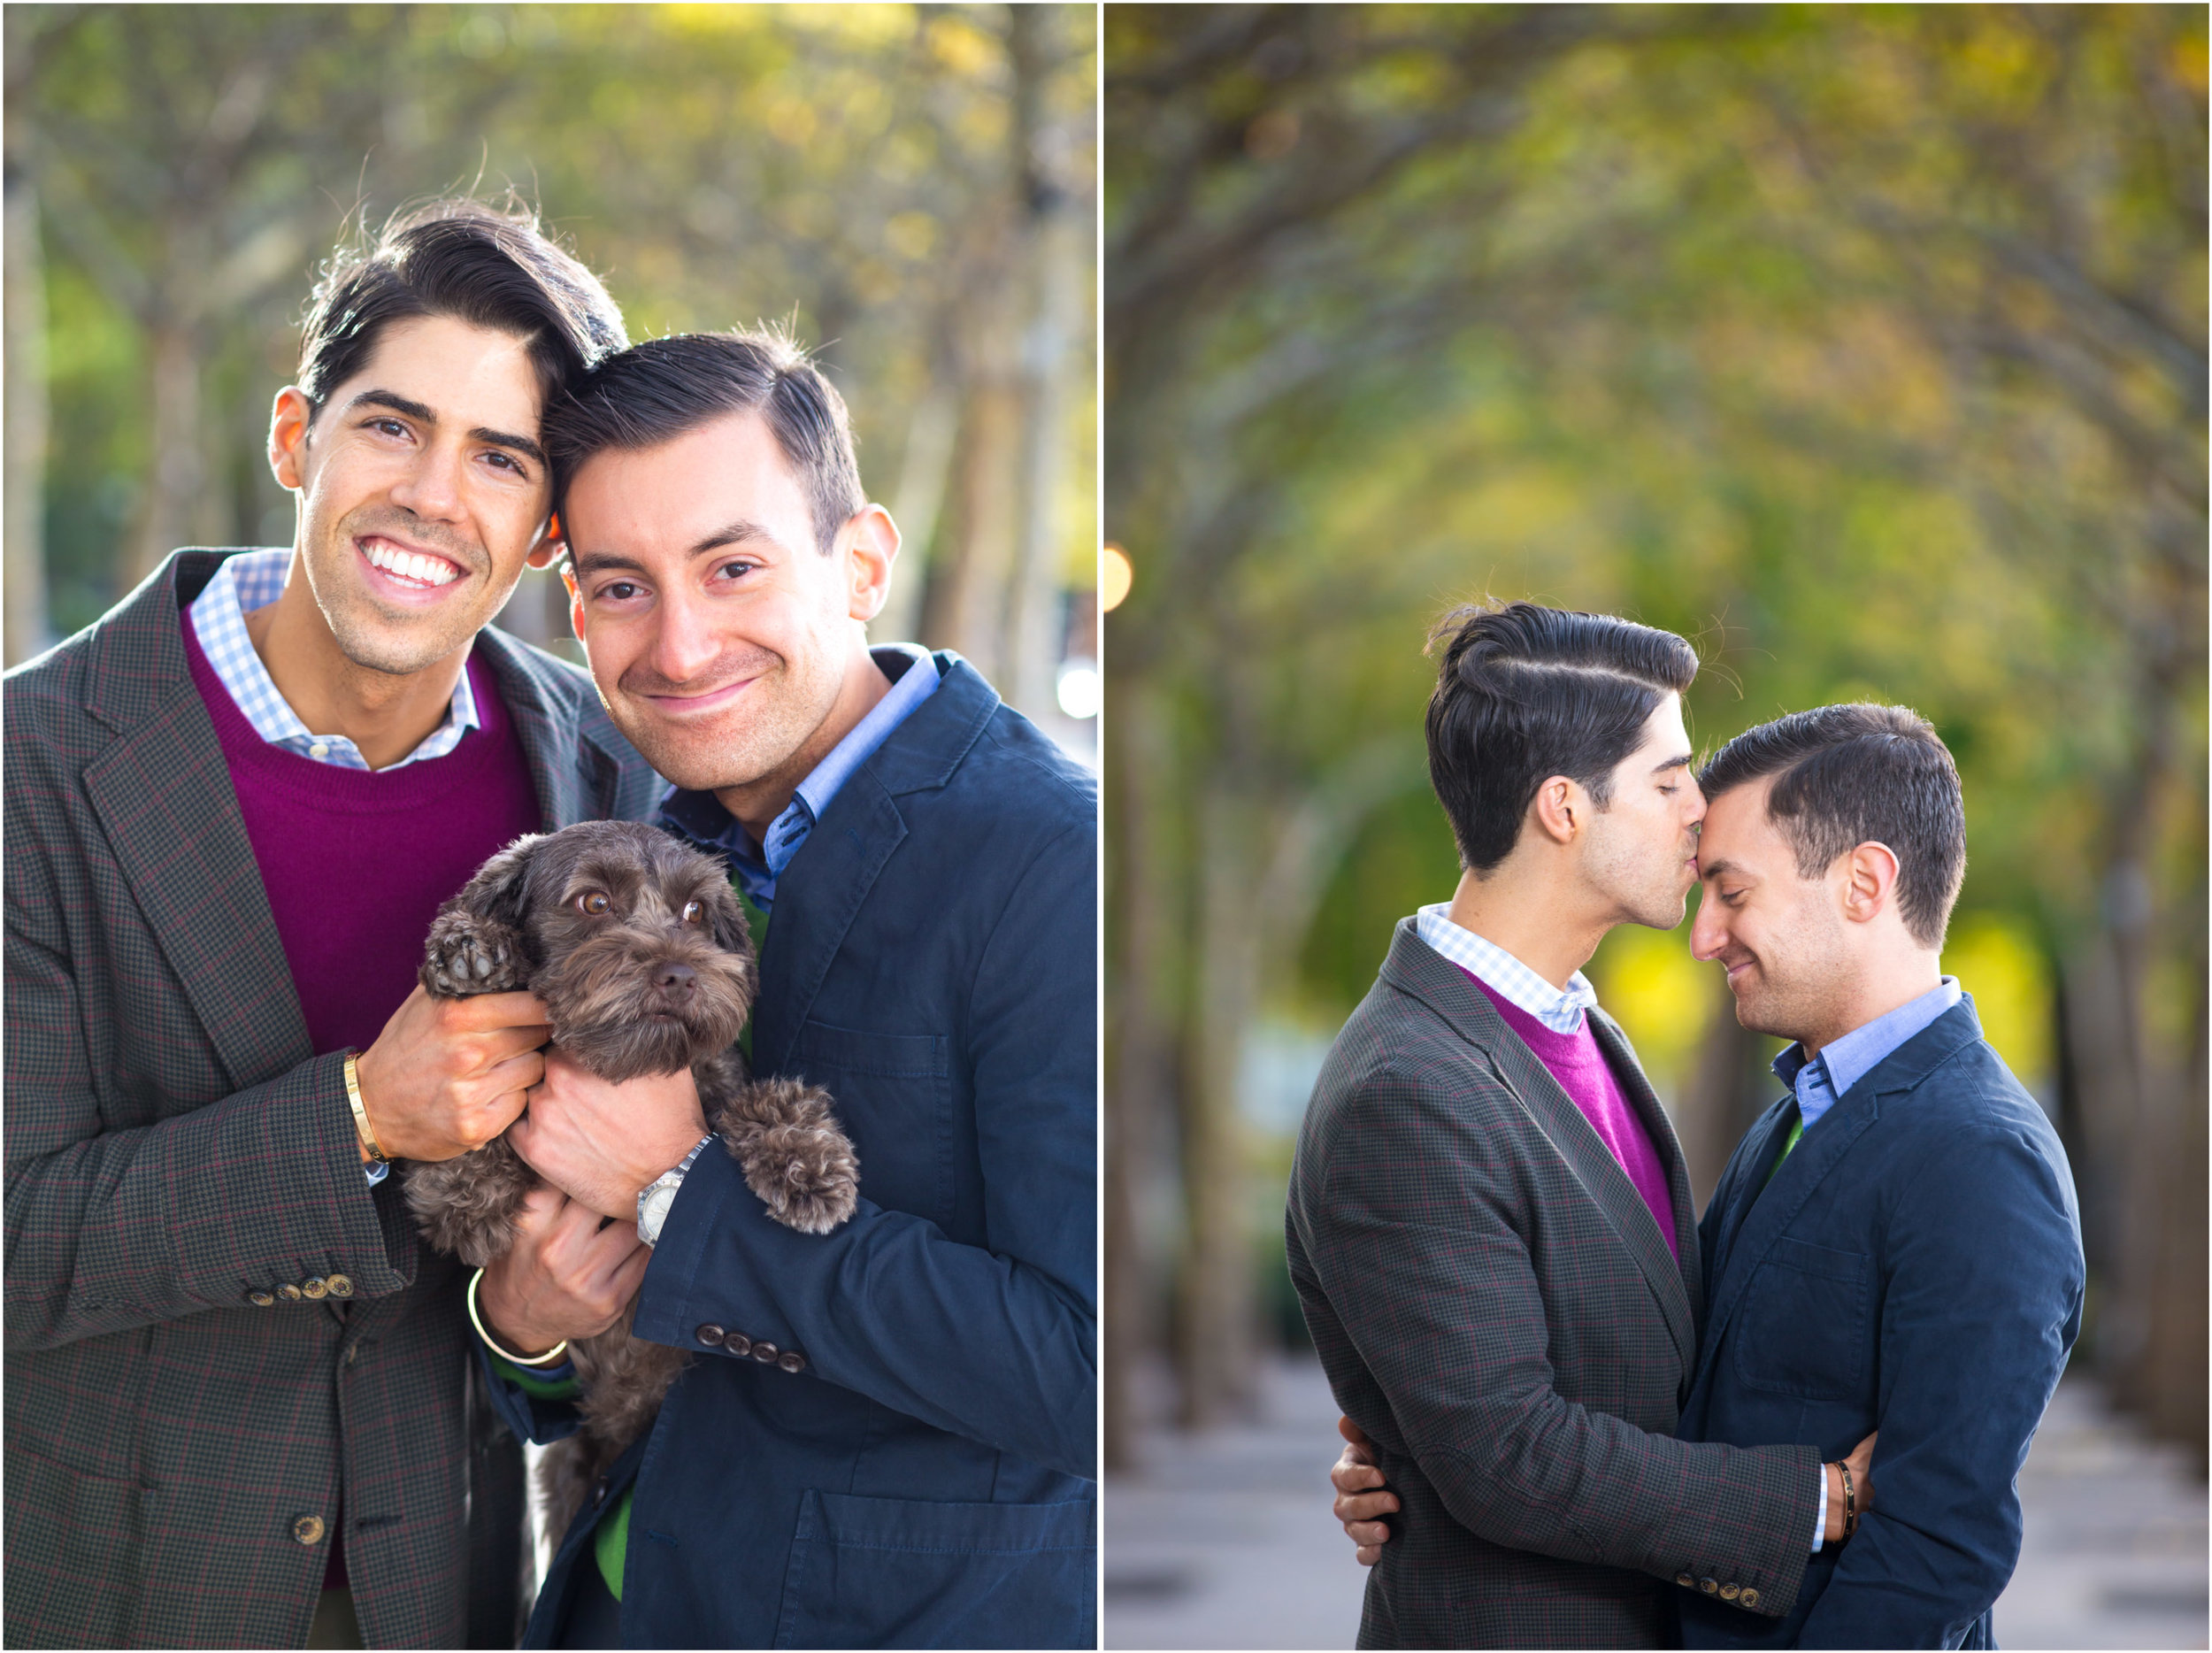 NYC Engagement Session Photo Shoot Same Sex Gay Wedding Photographer-3.jpg